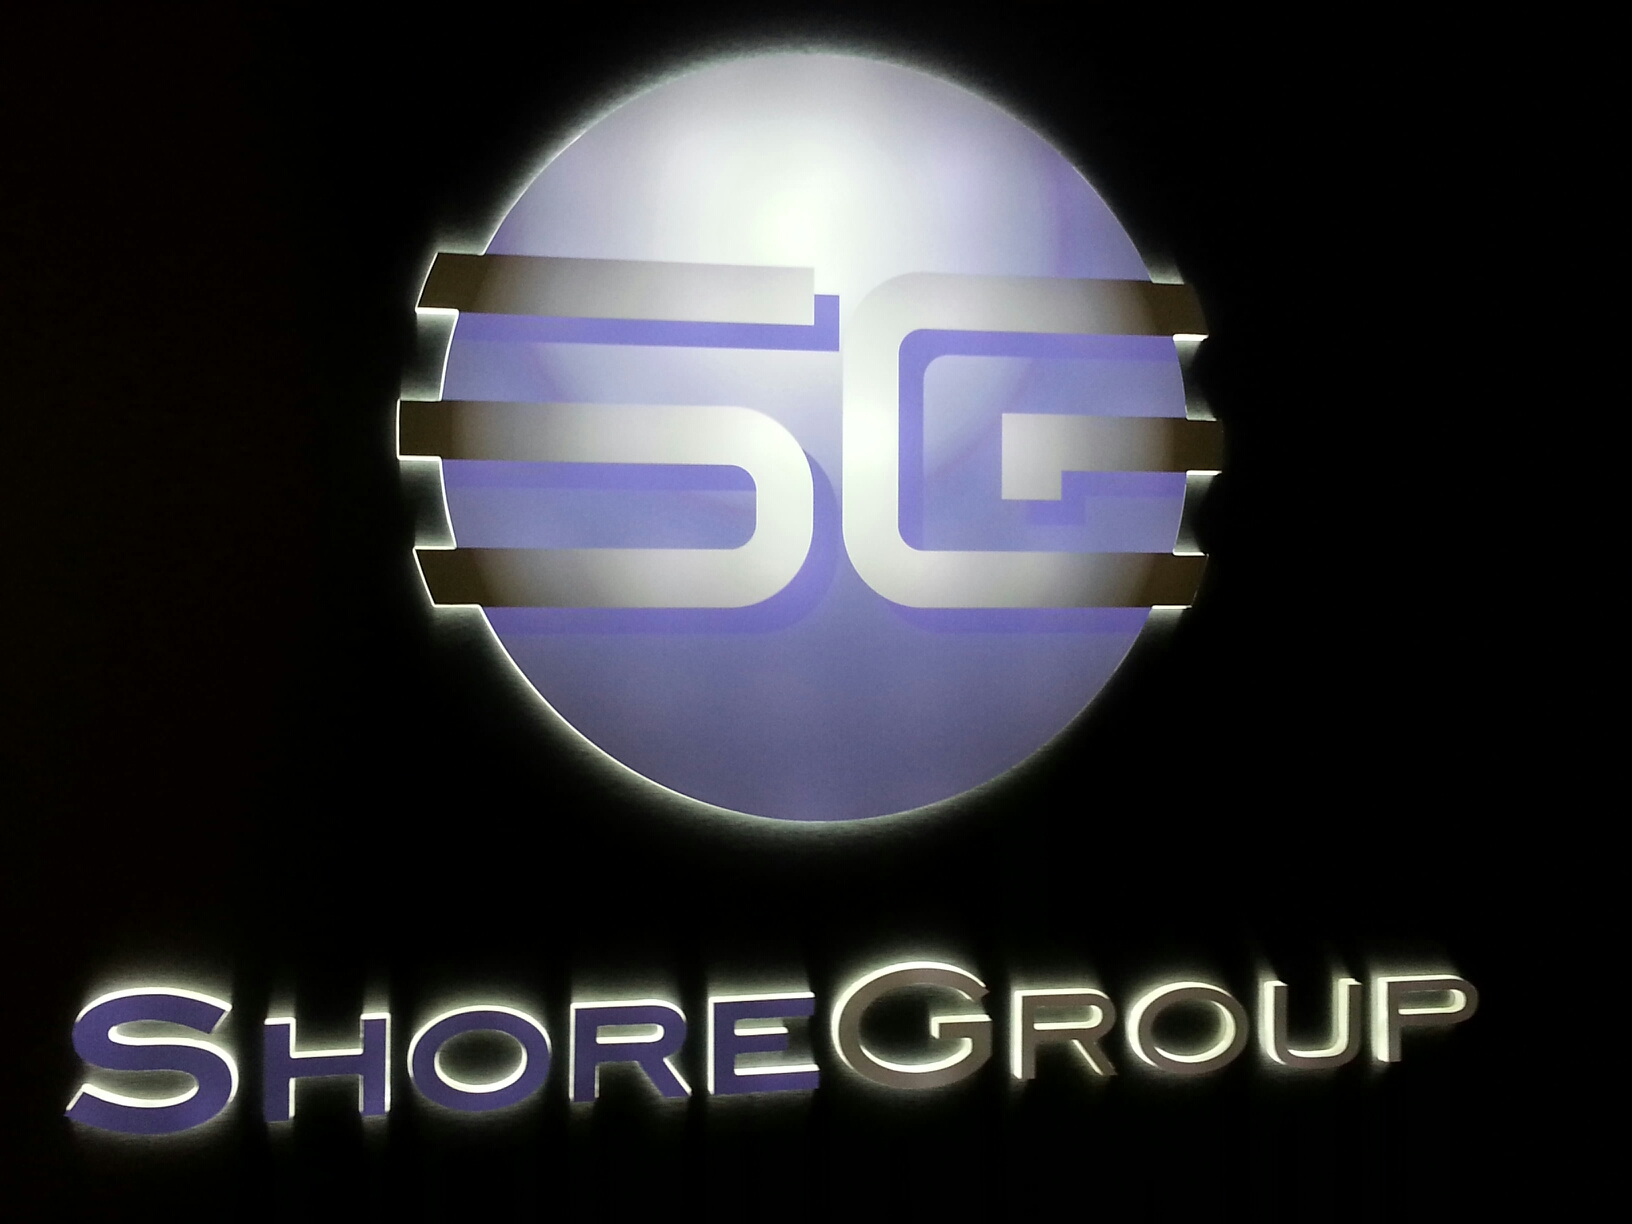 Custom signs, Syracuse NY, LED Illuminated signs, Syracuse NY, Shore Group, Syracuse NY, Push through acrylic lit signs, Syracuse NY :: Shore Group - Custom Illuminated sign with push through acrylic, Liverpool, NY :: Syracuse NY, Central NY, Upstate NY